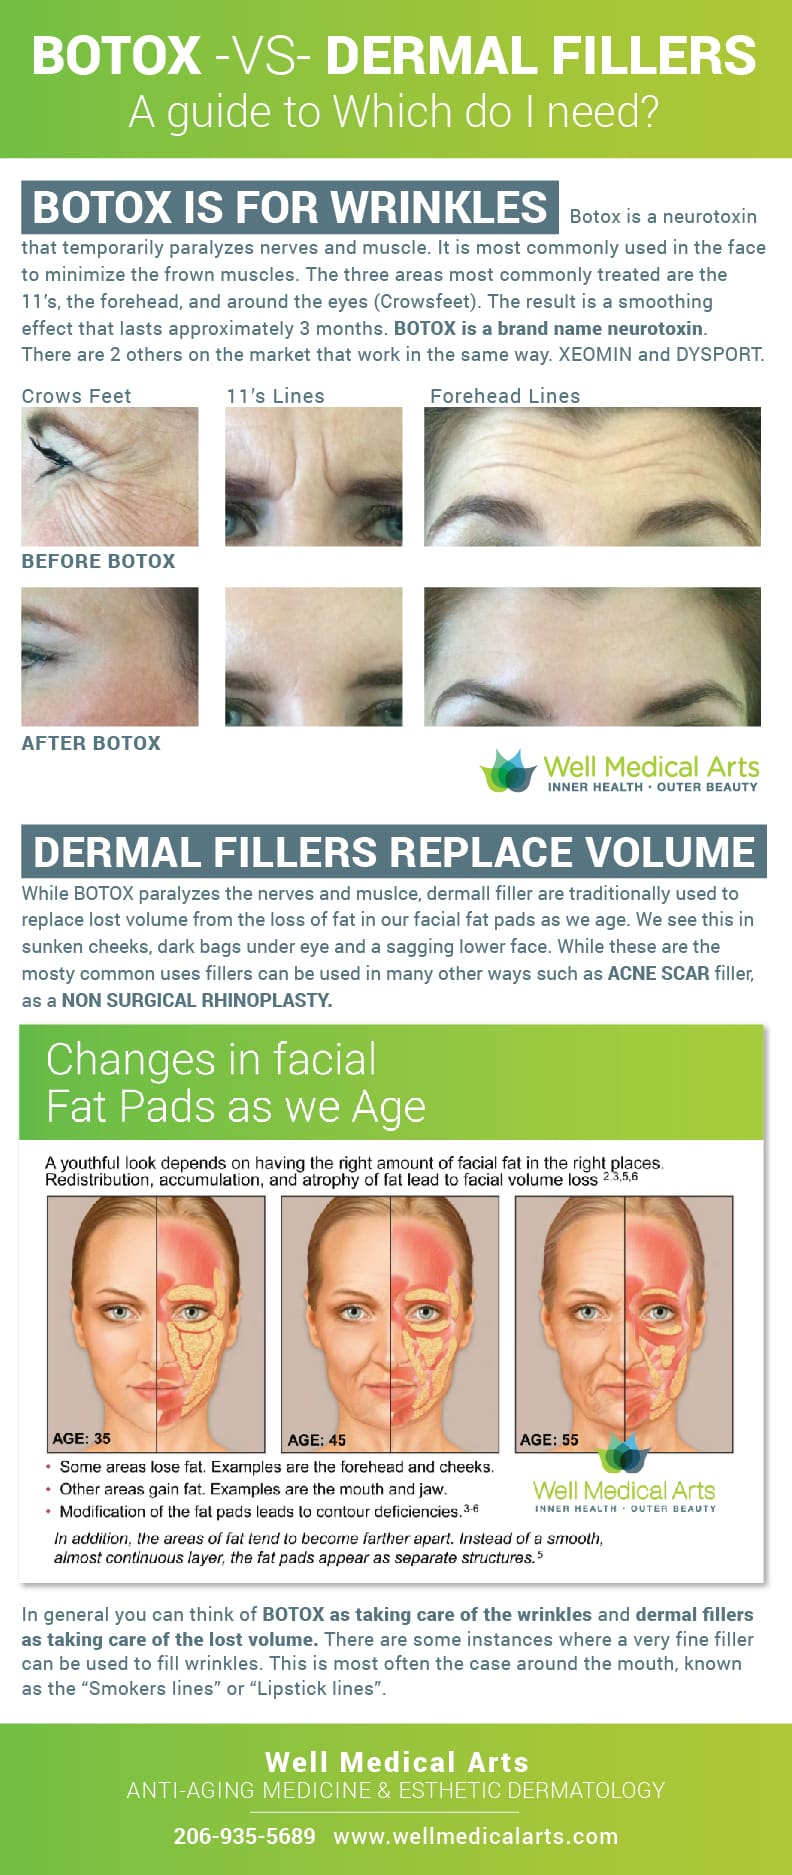 Botox vs Dermal Fillers, Which do I need to address my concerns?